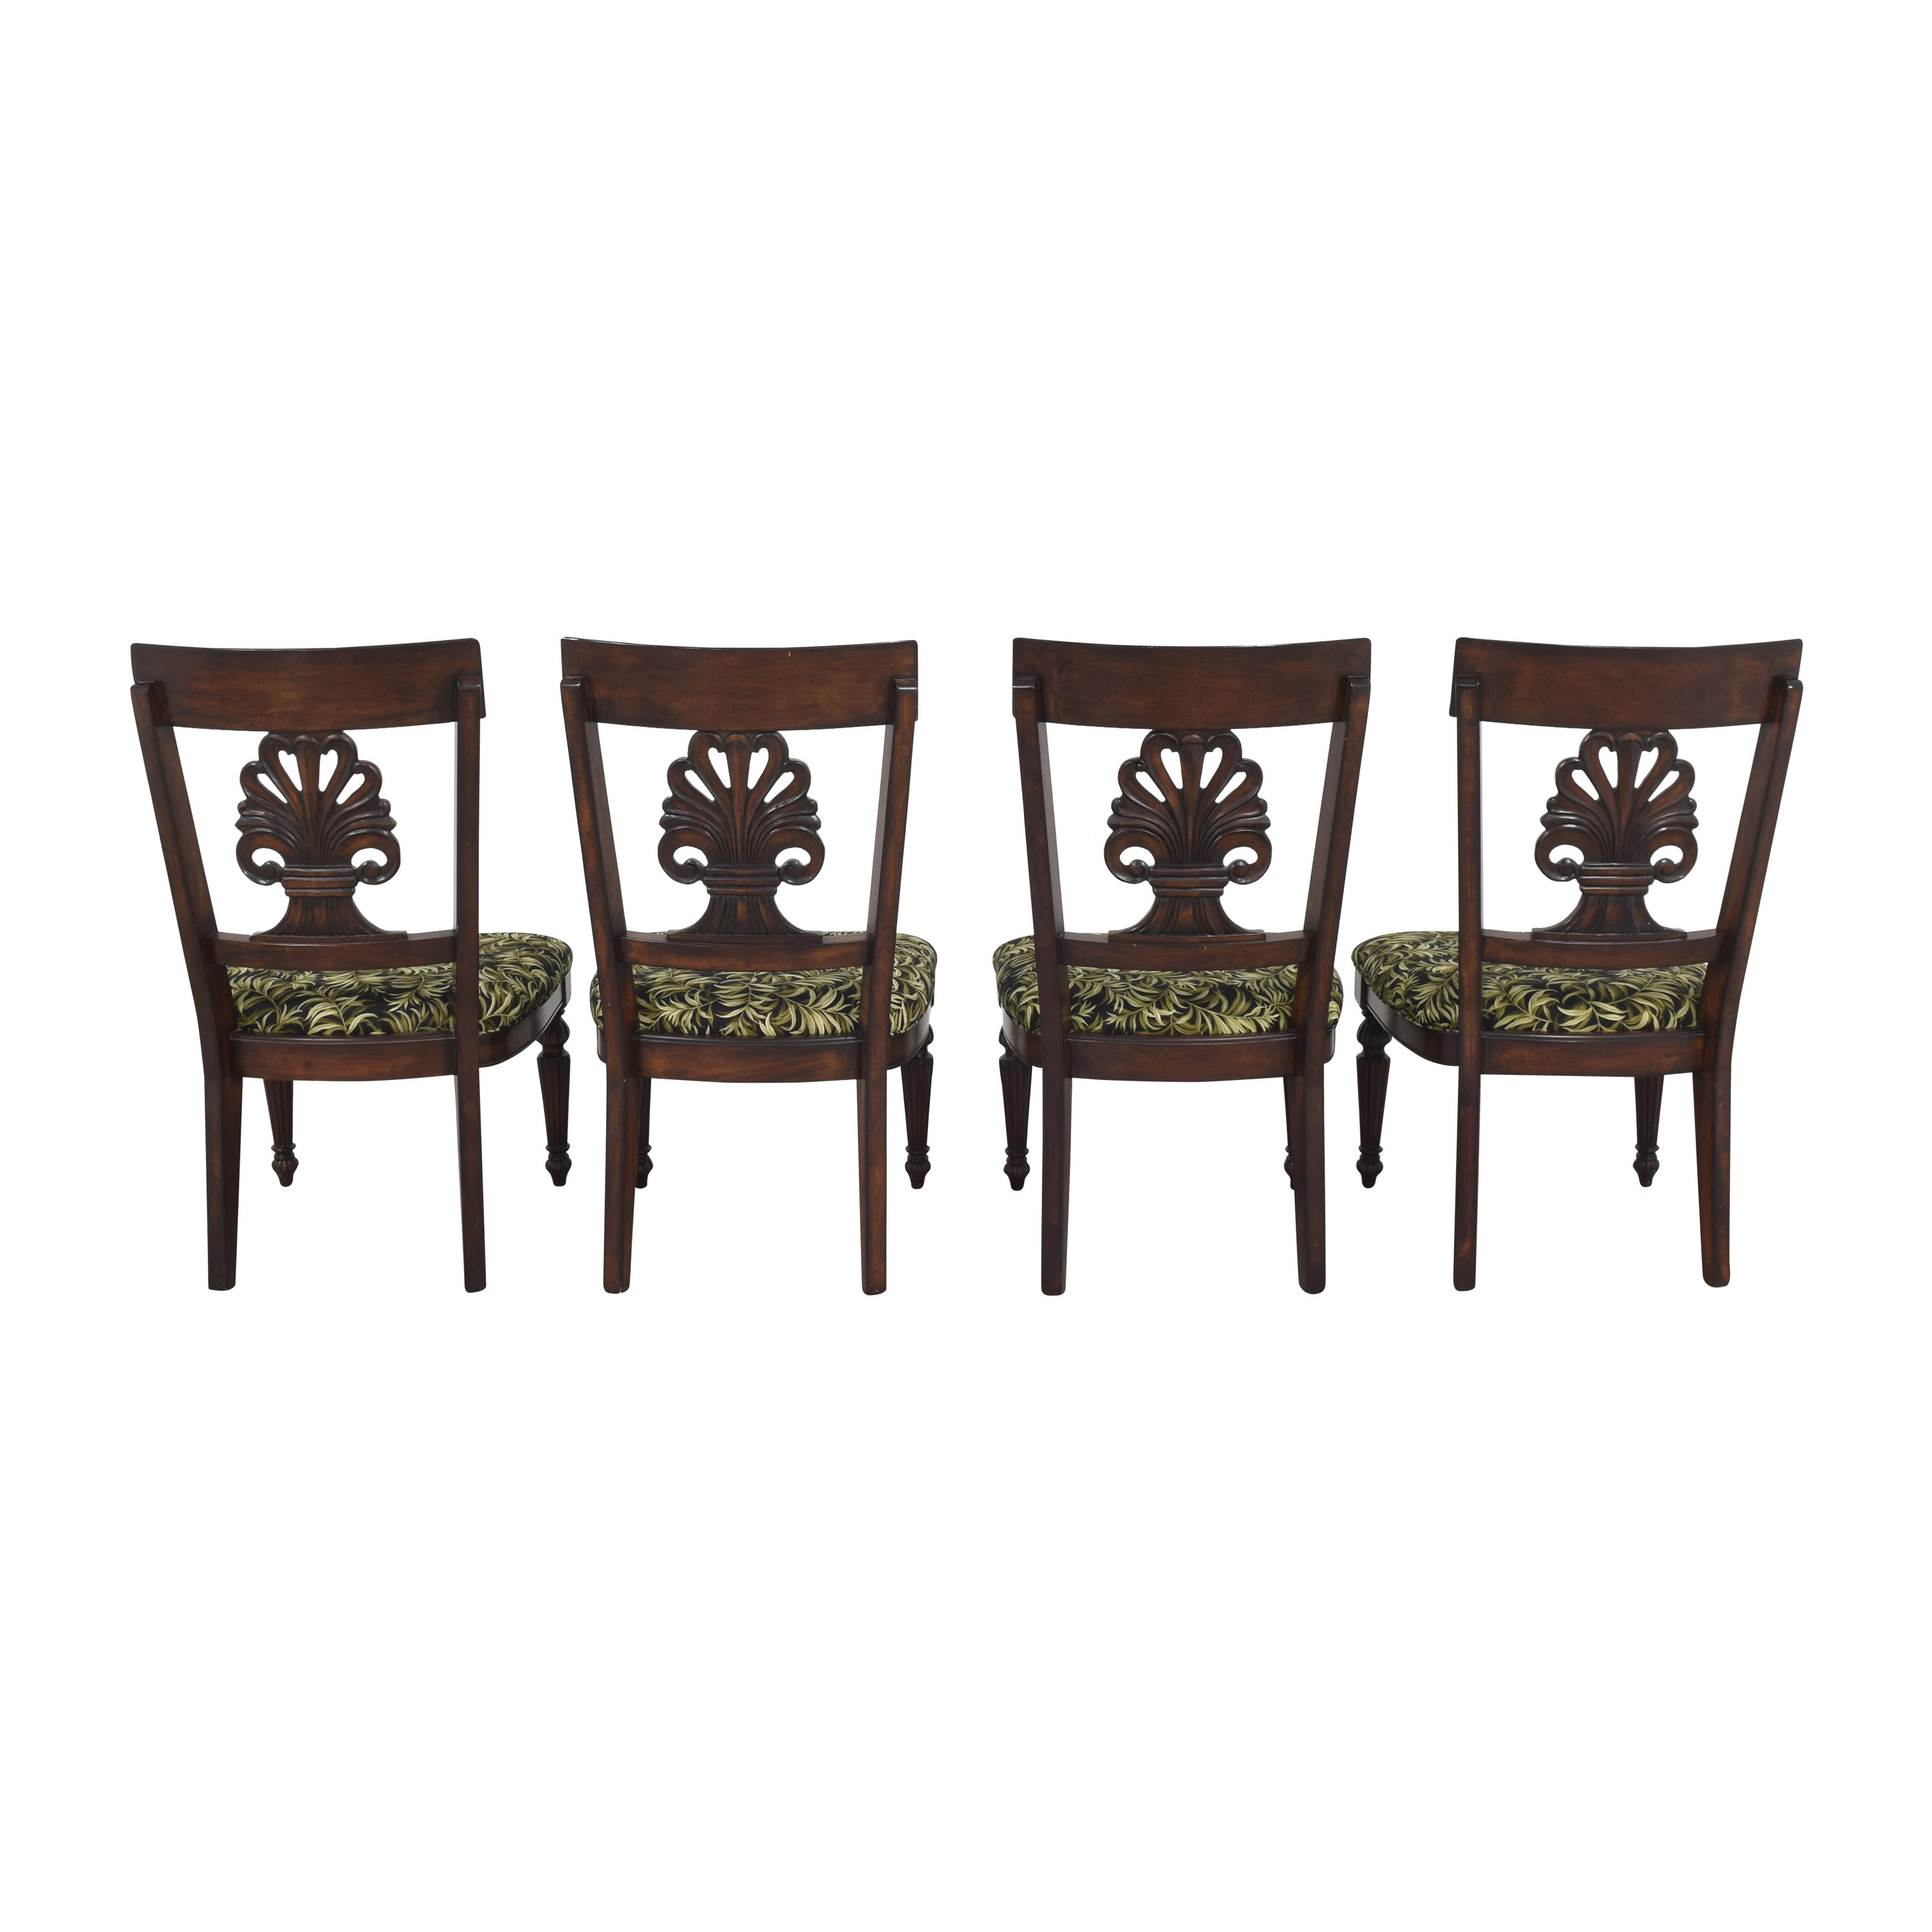 Tommy Bahama Dining Chairs / Dining Chairs